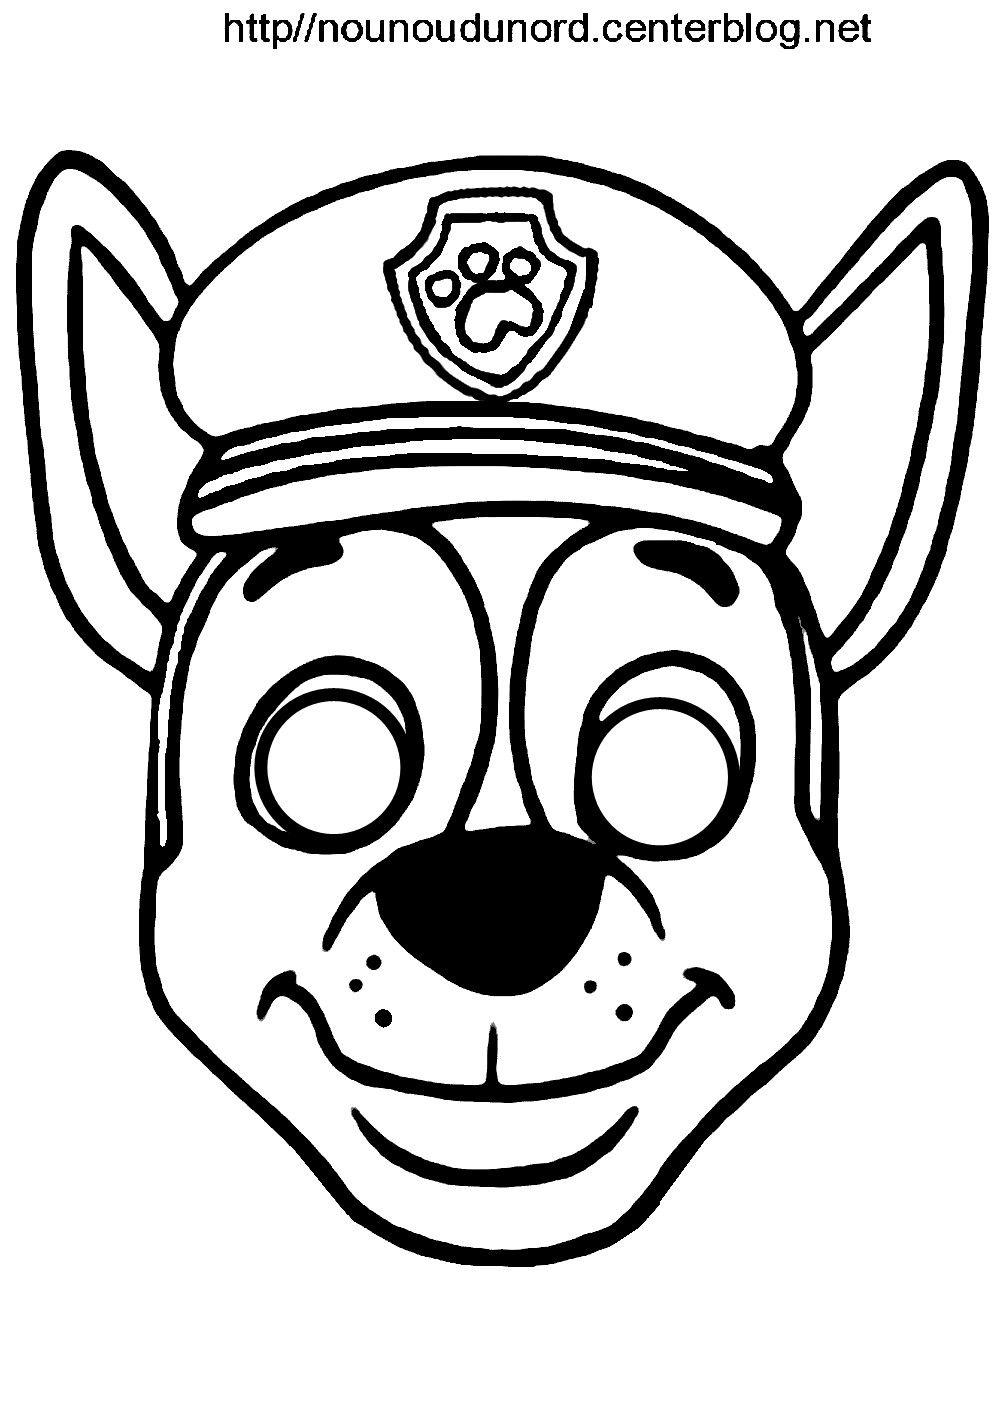 paw patrol mask coloring pages paw patrol printable mask coloring pages sketch coloring page pages mask patrol paw coloring